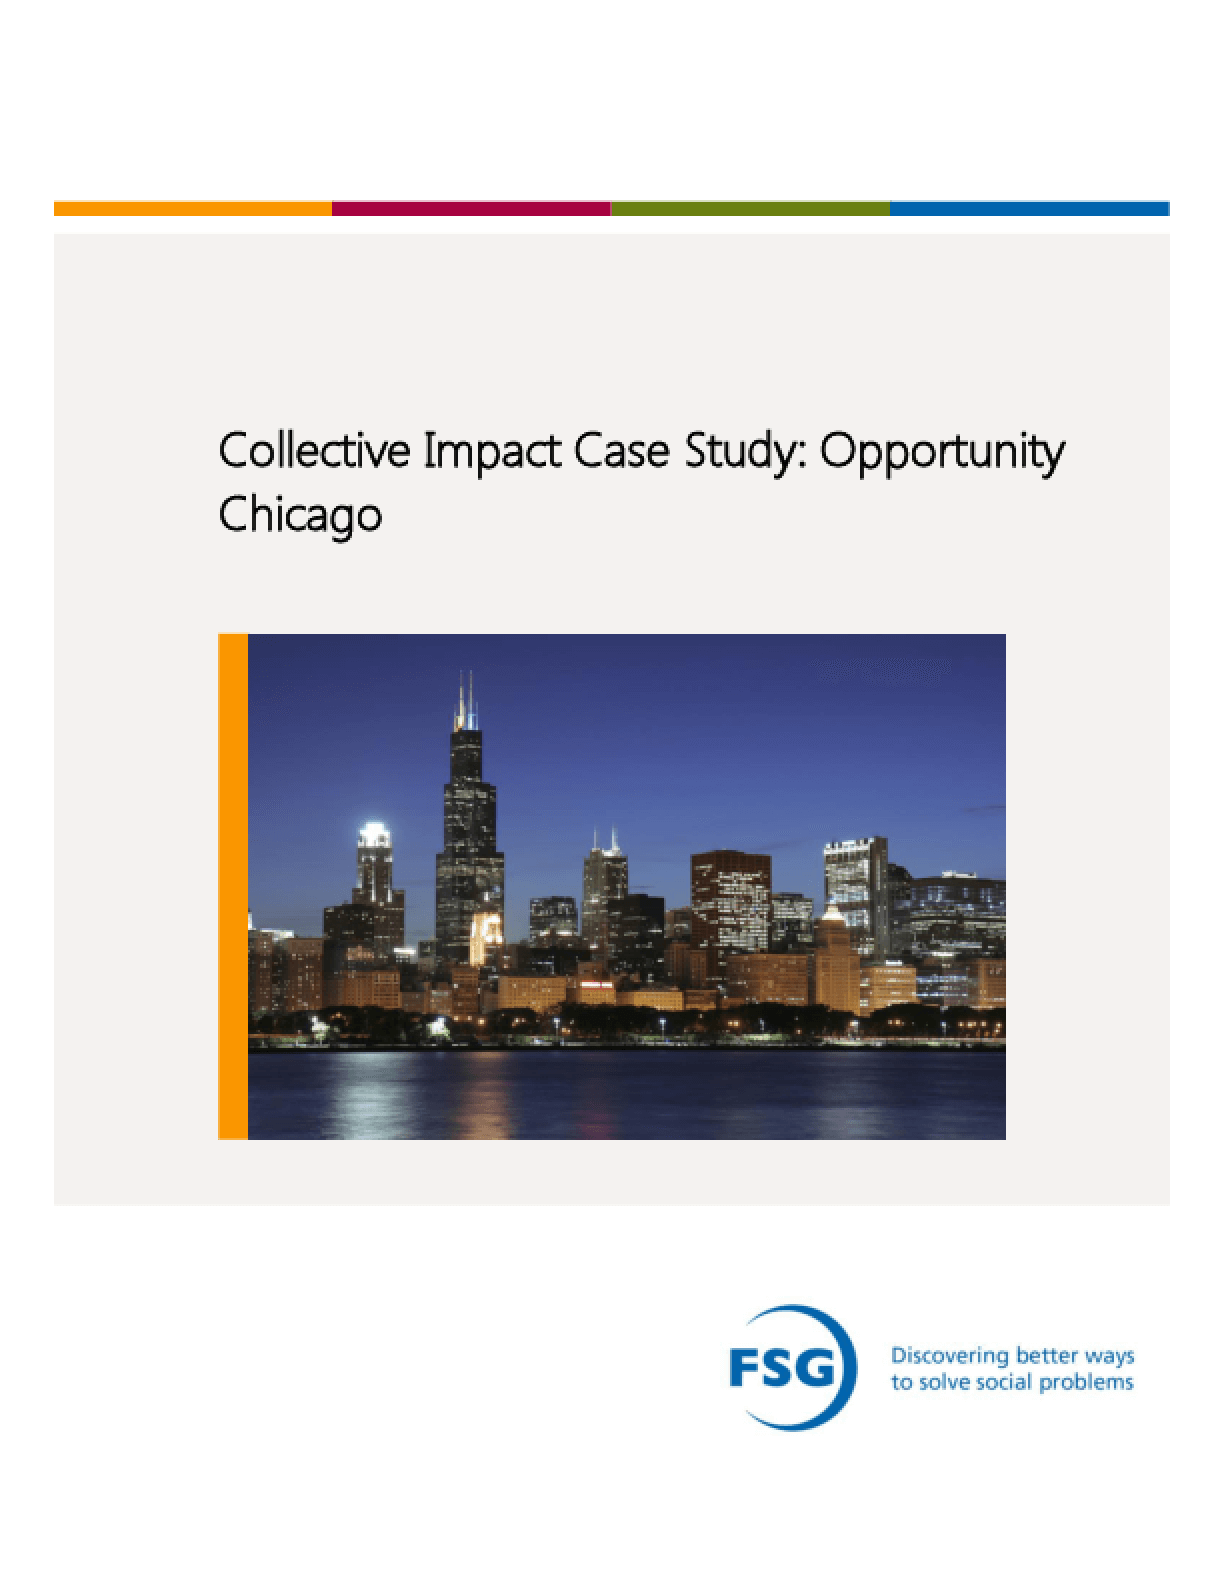 Collective Impact Case Study: Opportunity Chicago